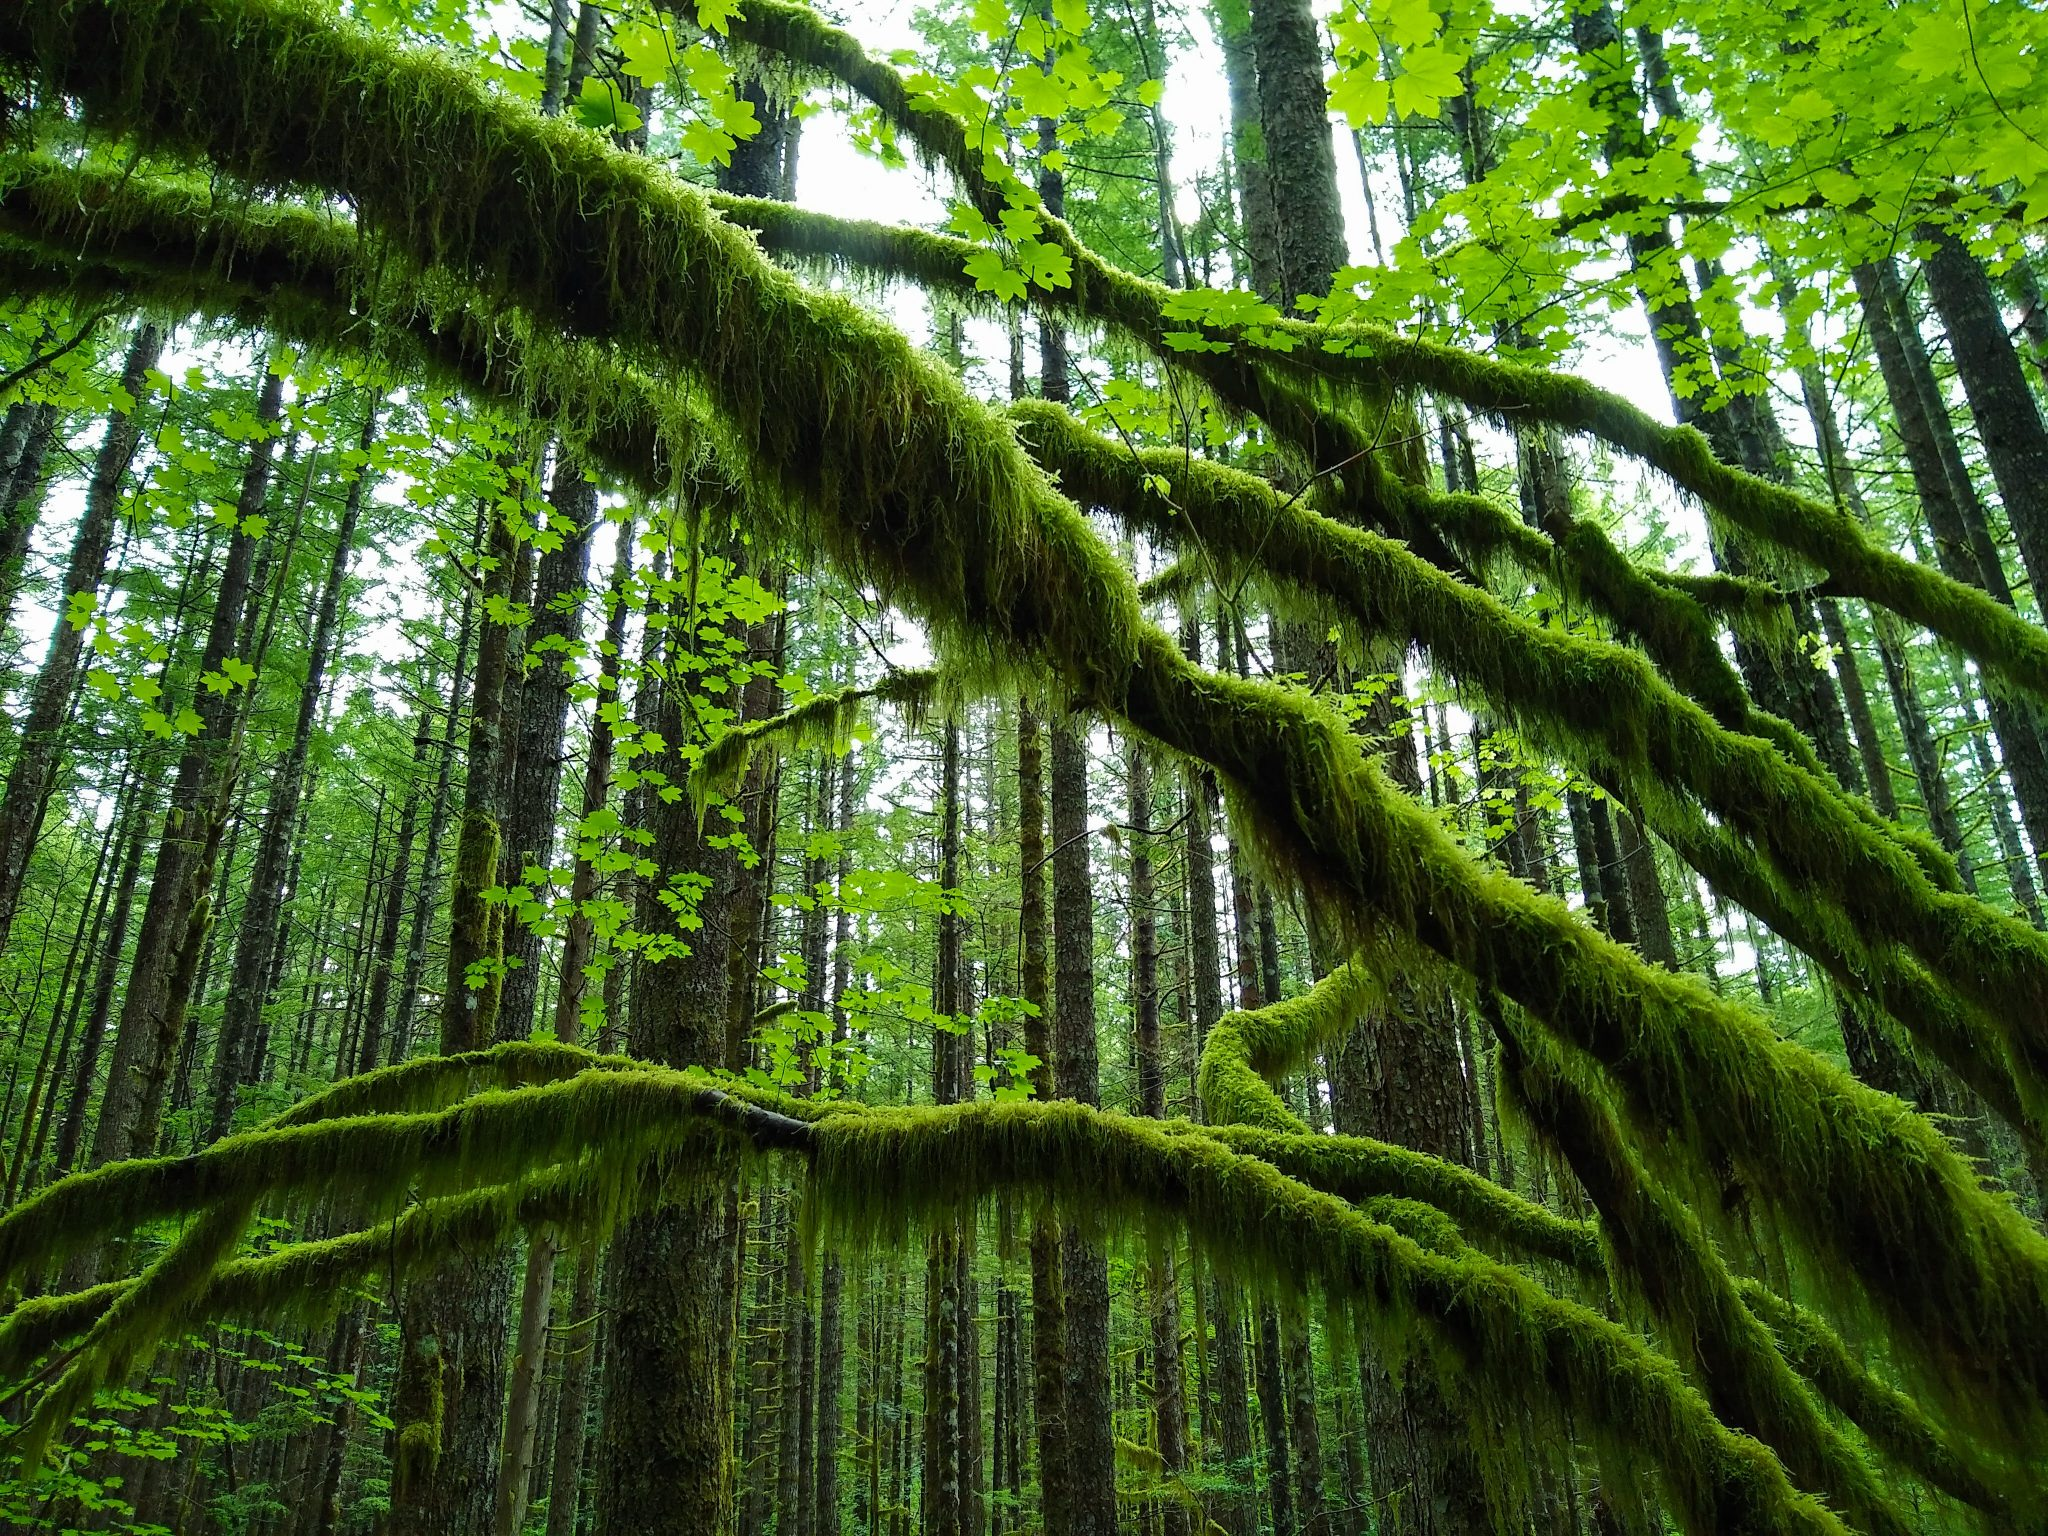 Cedar Butte Hike is a trail through a mossy green forest to a view. The trail has straight, young trees and arches of moss